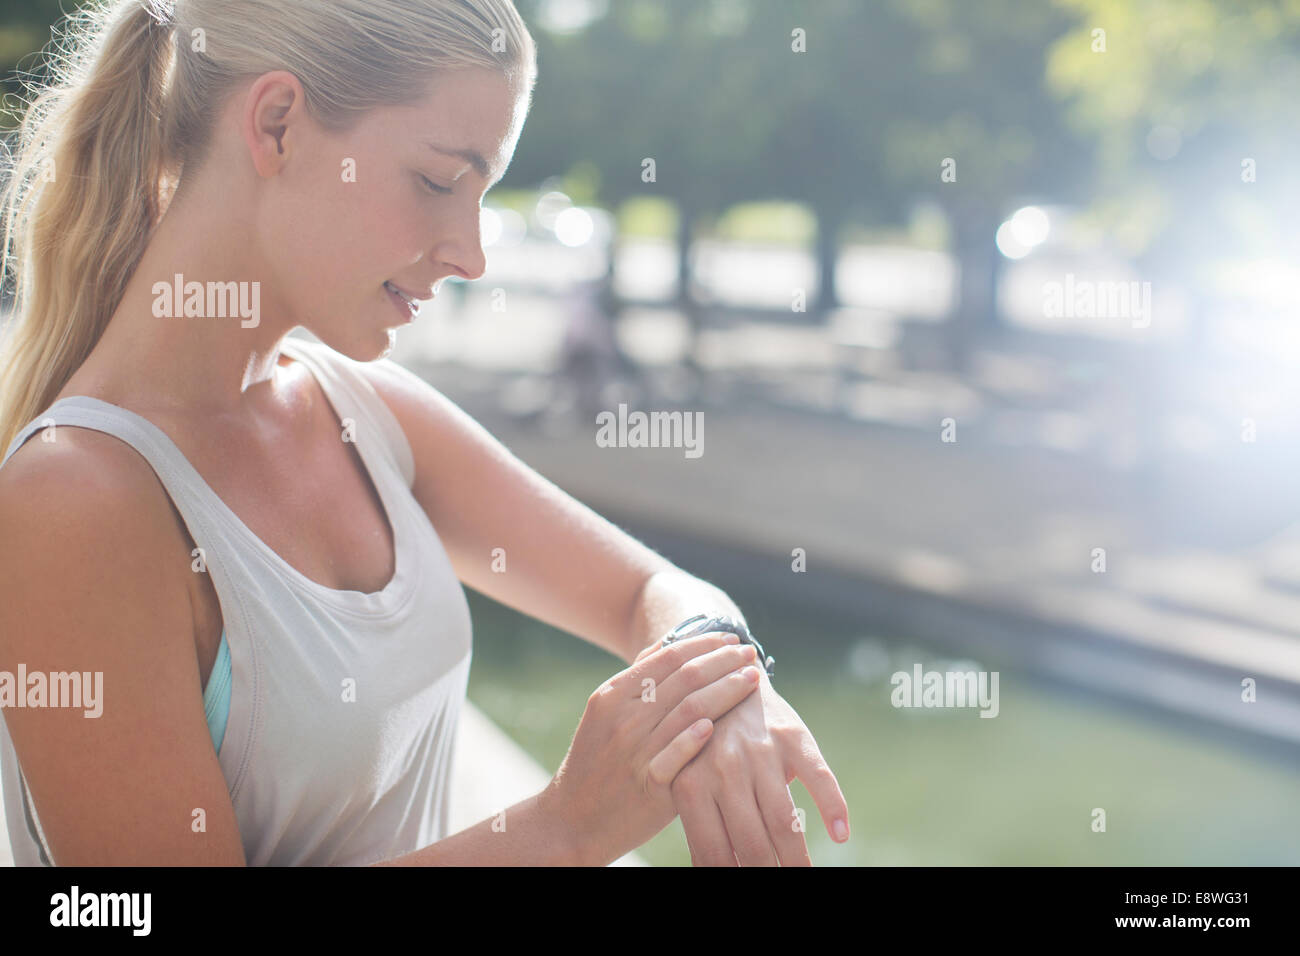 Woman looking at watch before exercising on city street - Stock Image